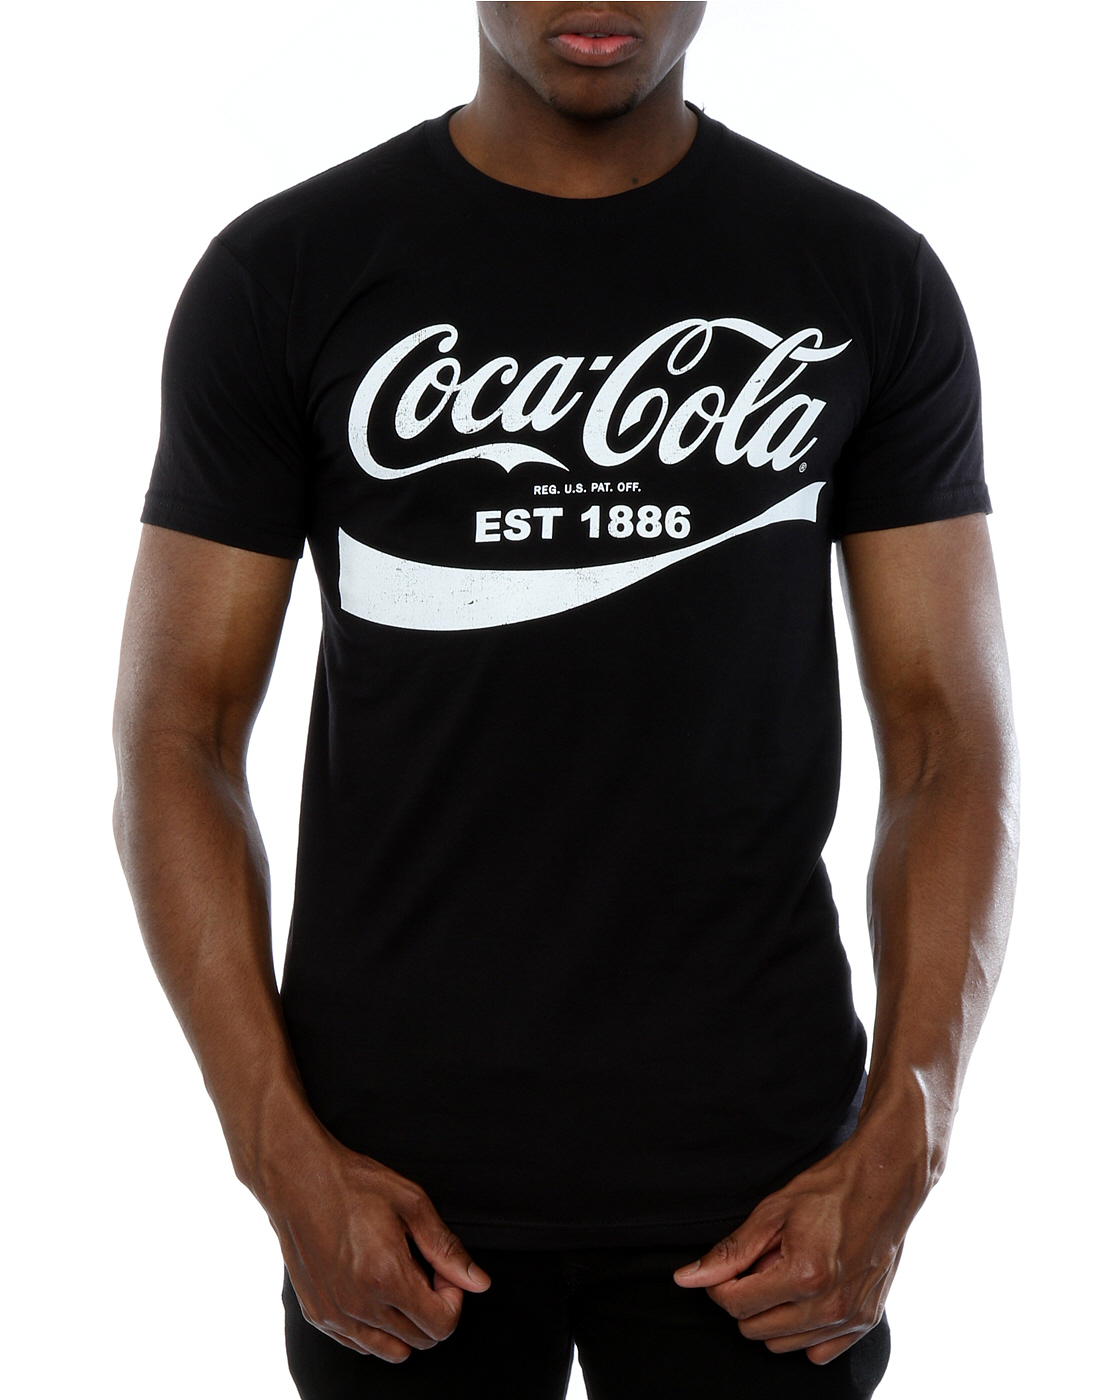 coca cola men 39 s 86 logo t shirt ebay. Black Bedroom Furniture Sets. Home Design Ideas